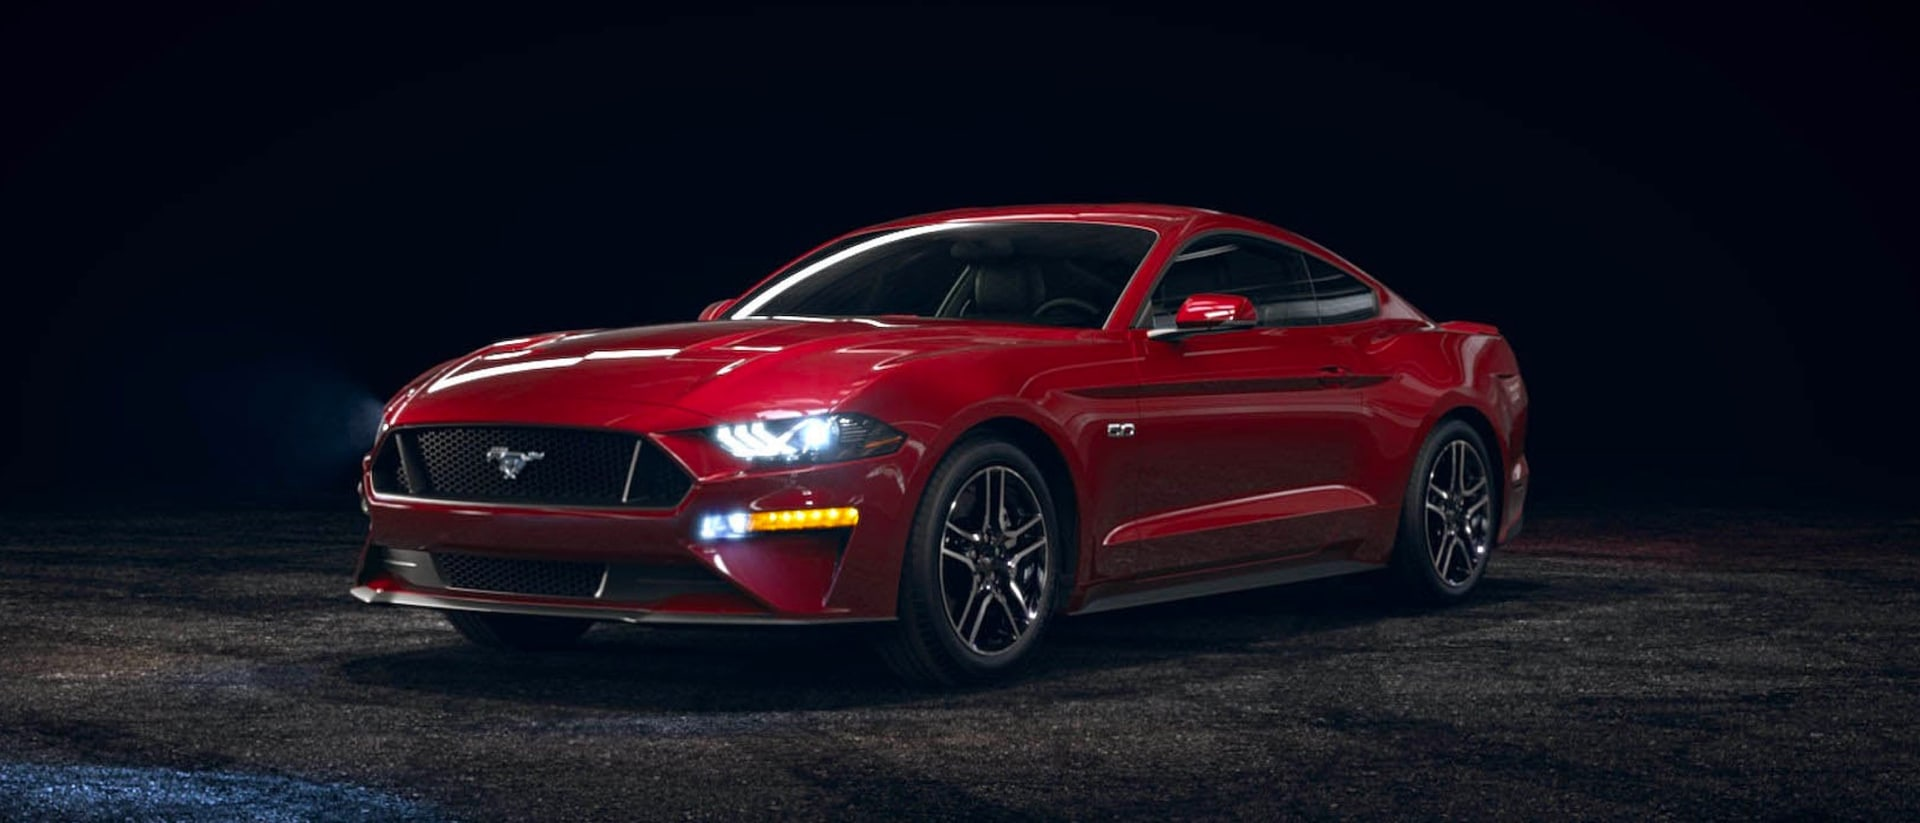 2021 Ford Mustang in Rapid Red